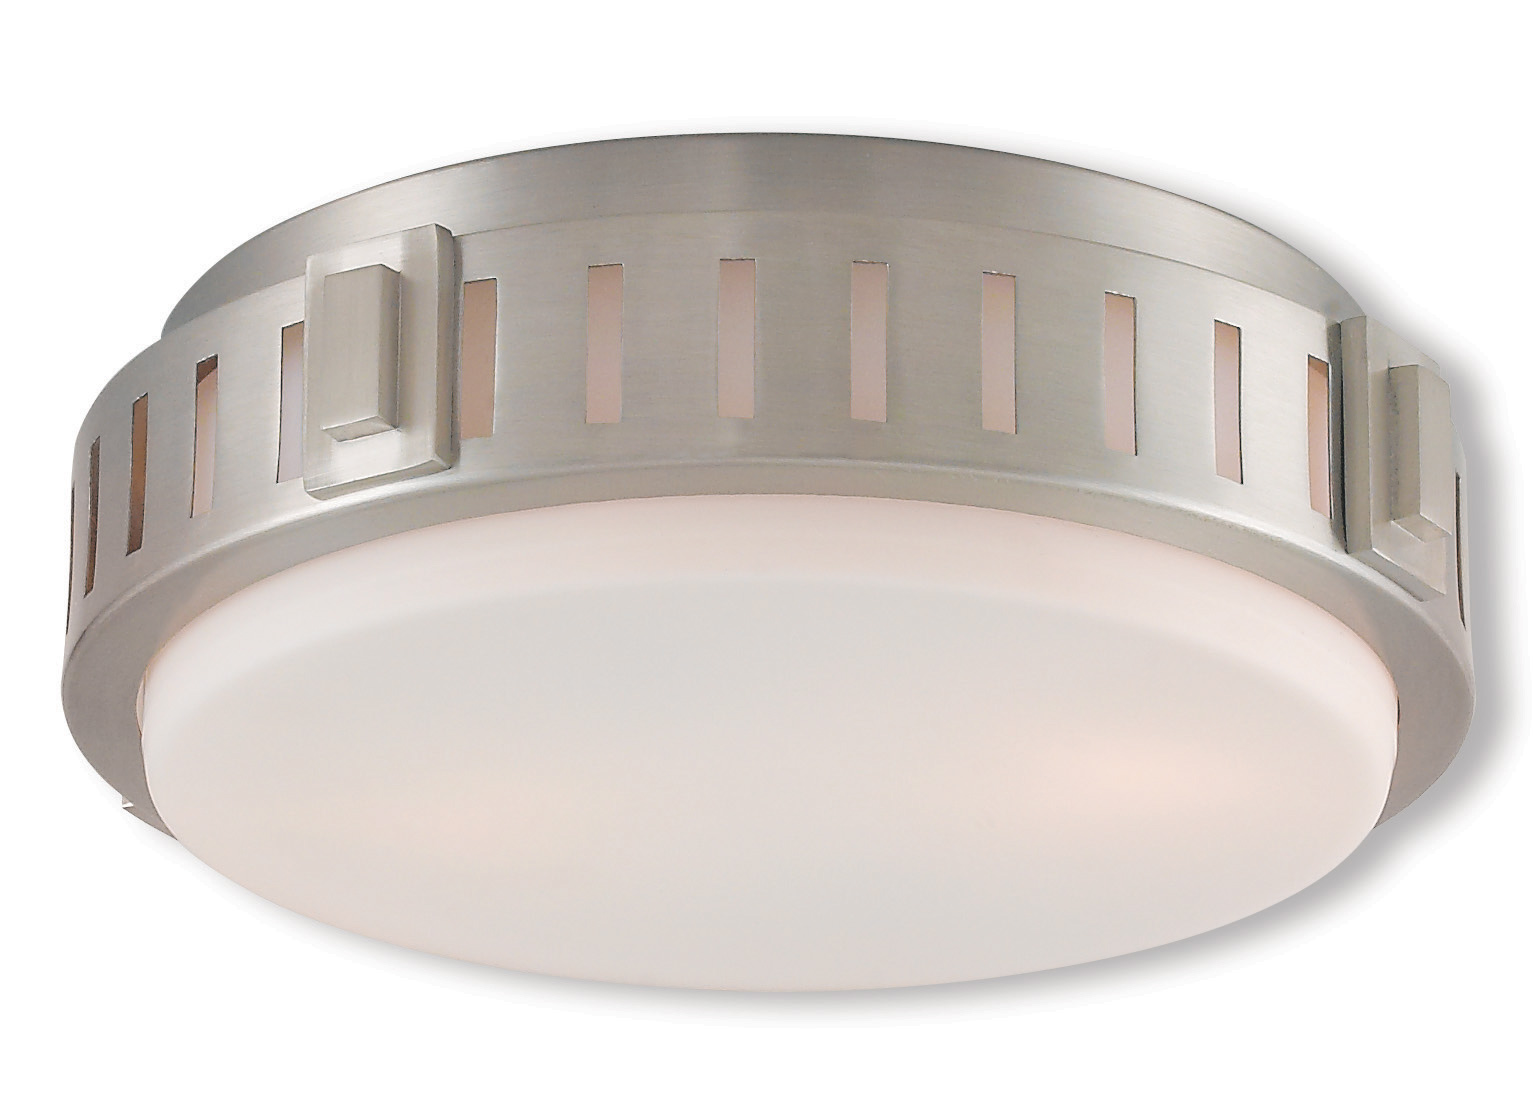 Ceiling Light Fixture By Livex Lighting